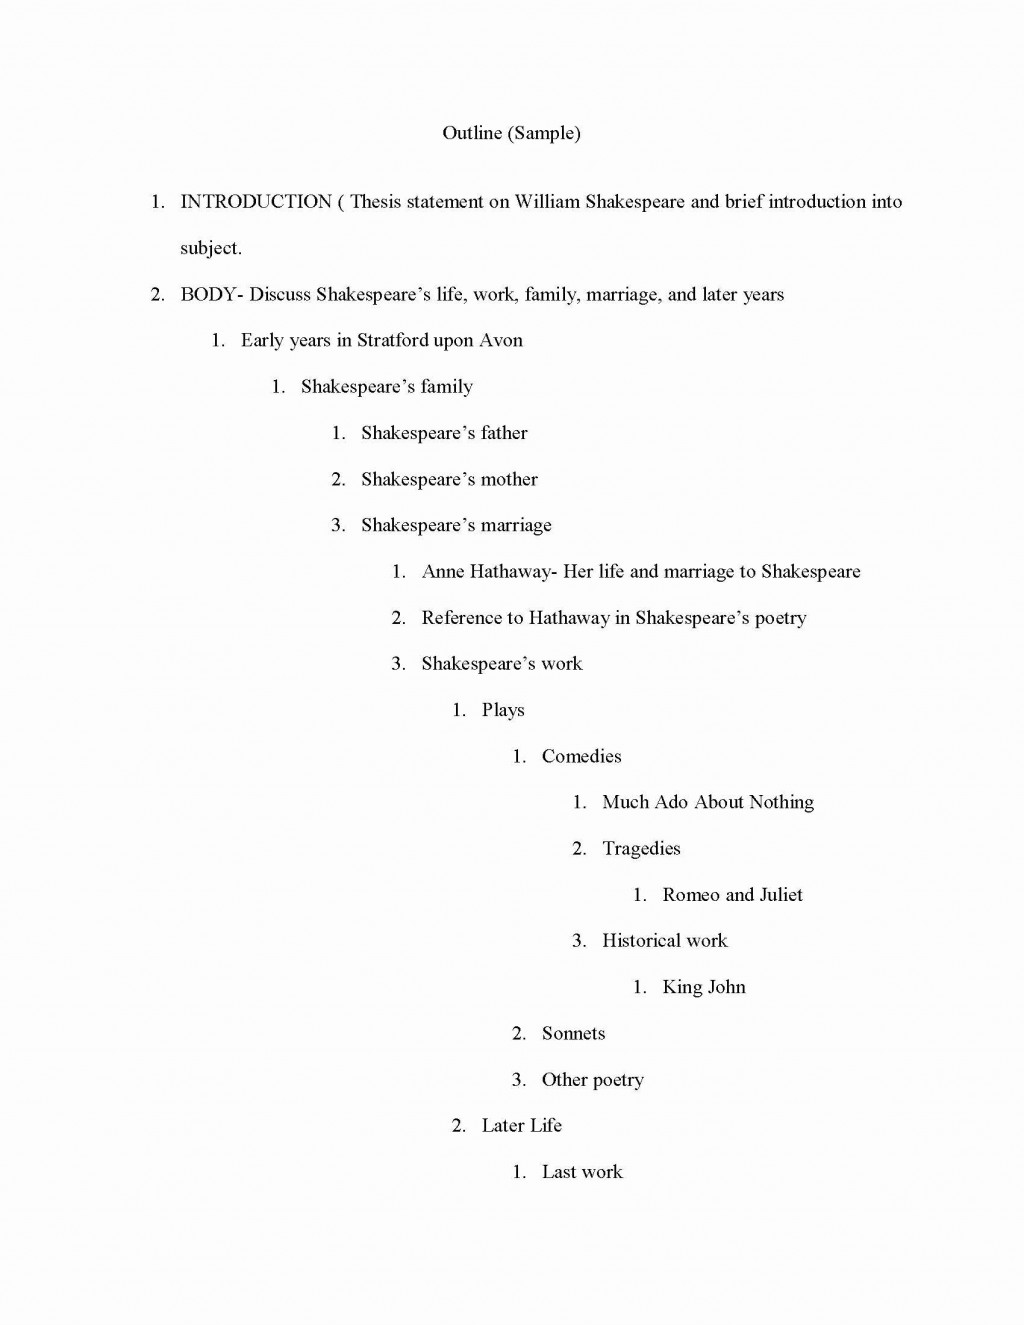 009 Basic Research Paper Outline Apa Format Template Beautiful Free Download Imposing Simple Sample For Easy Large